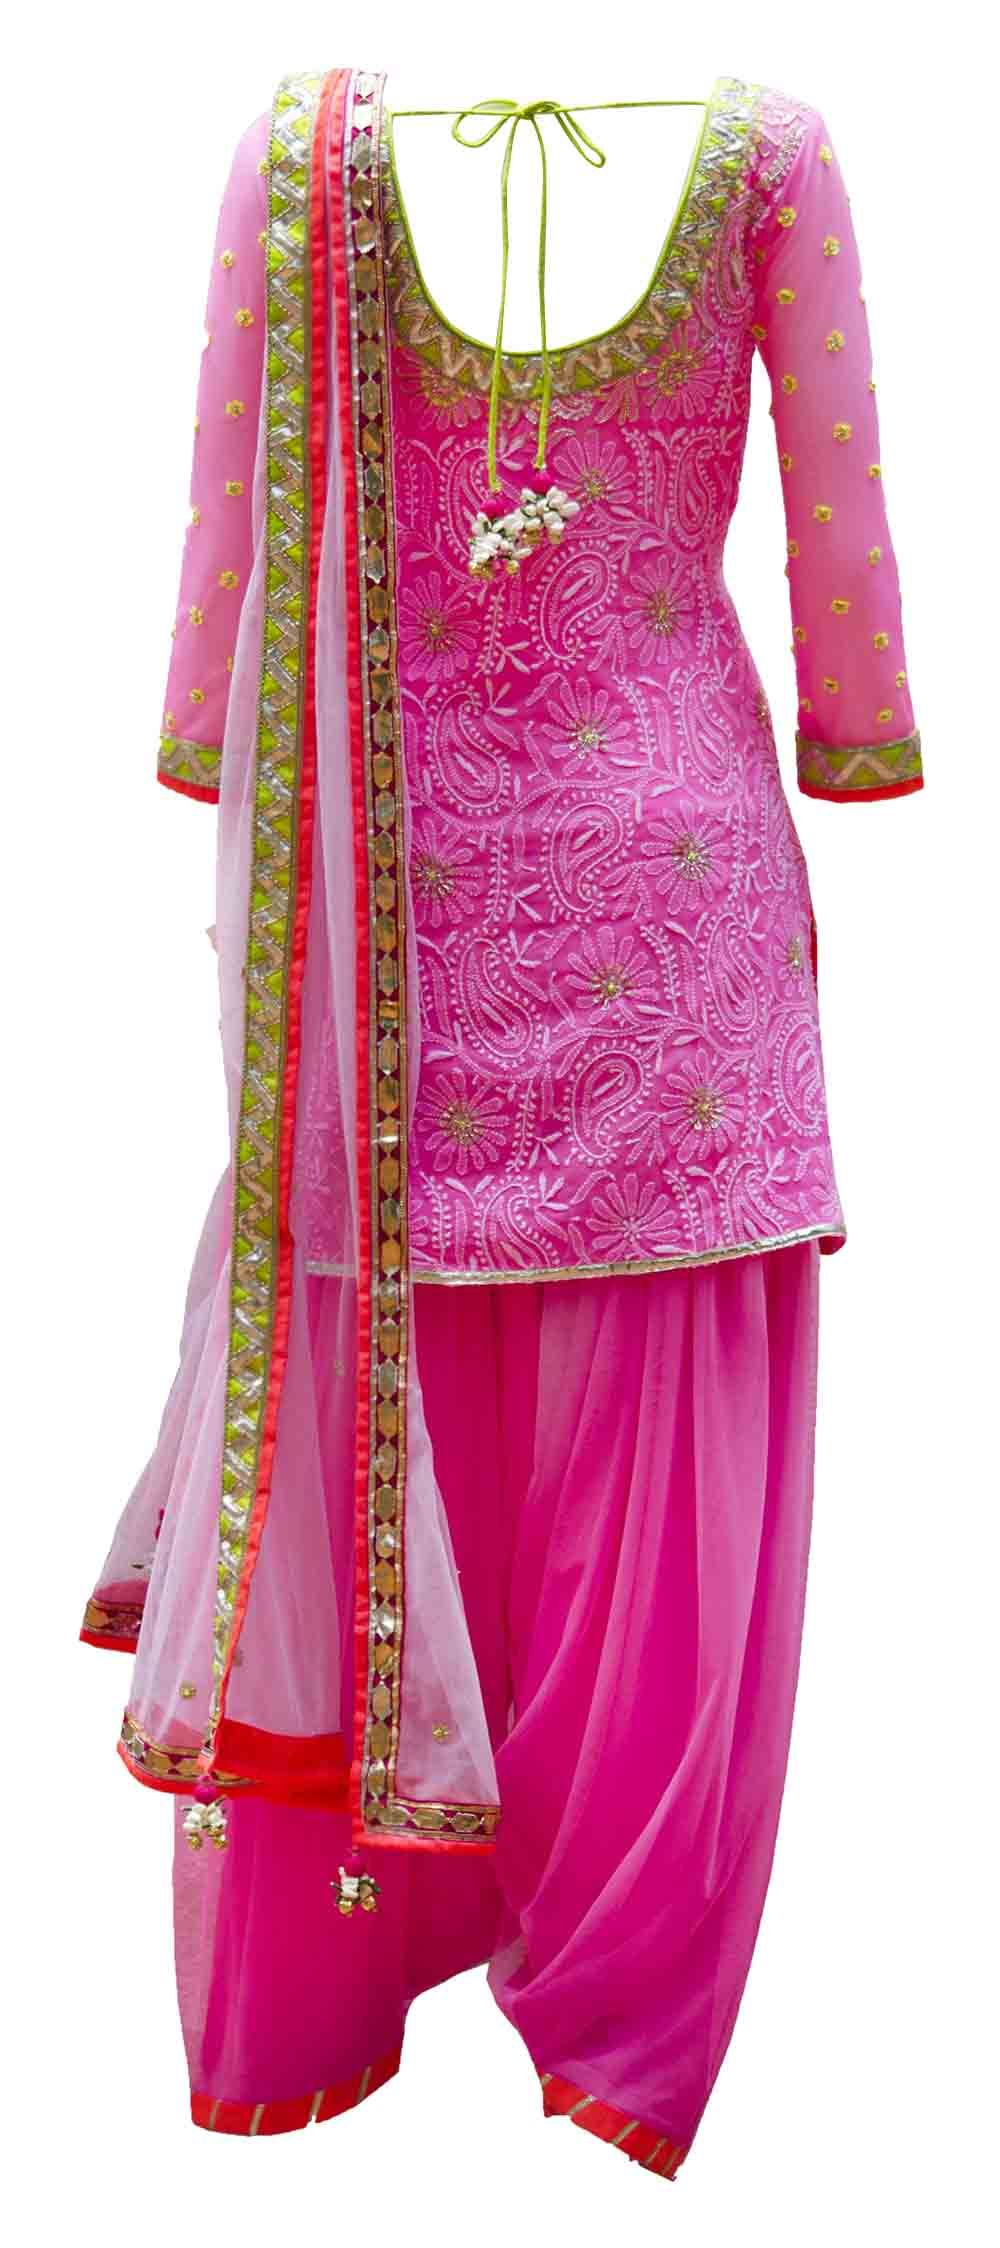 And patialas are back with a bang! :D Here\'s a cute one in pink+gold ...